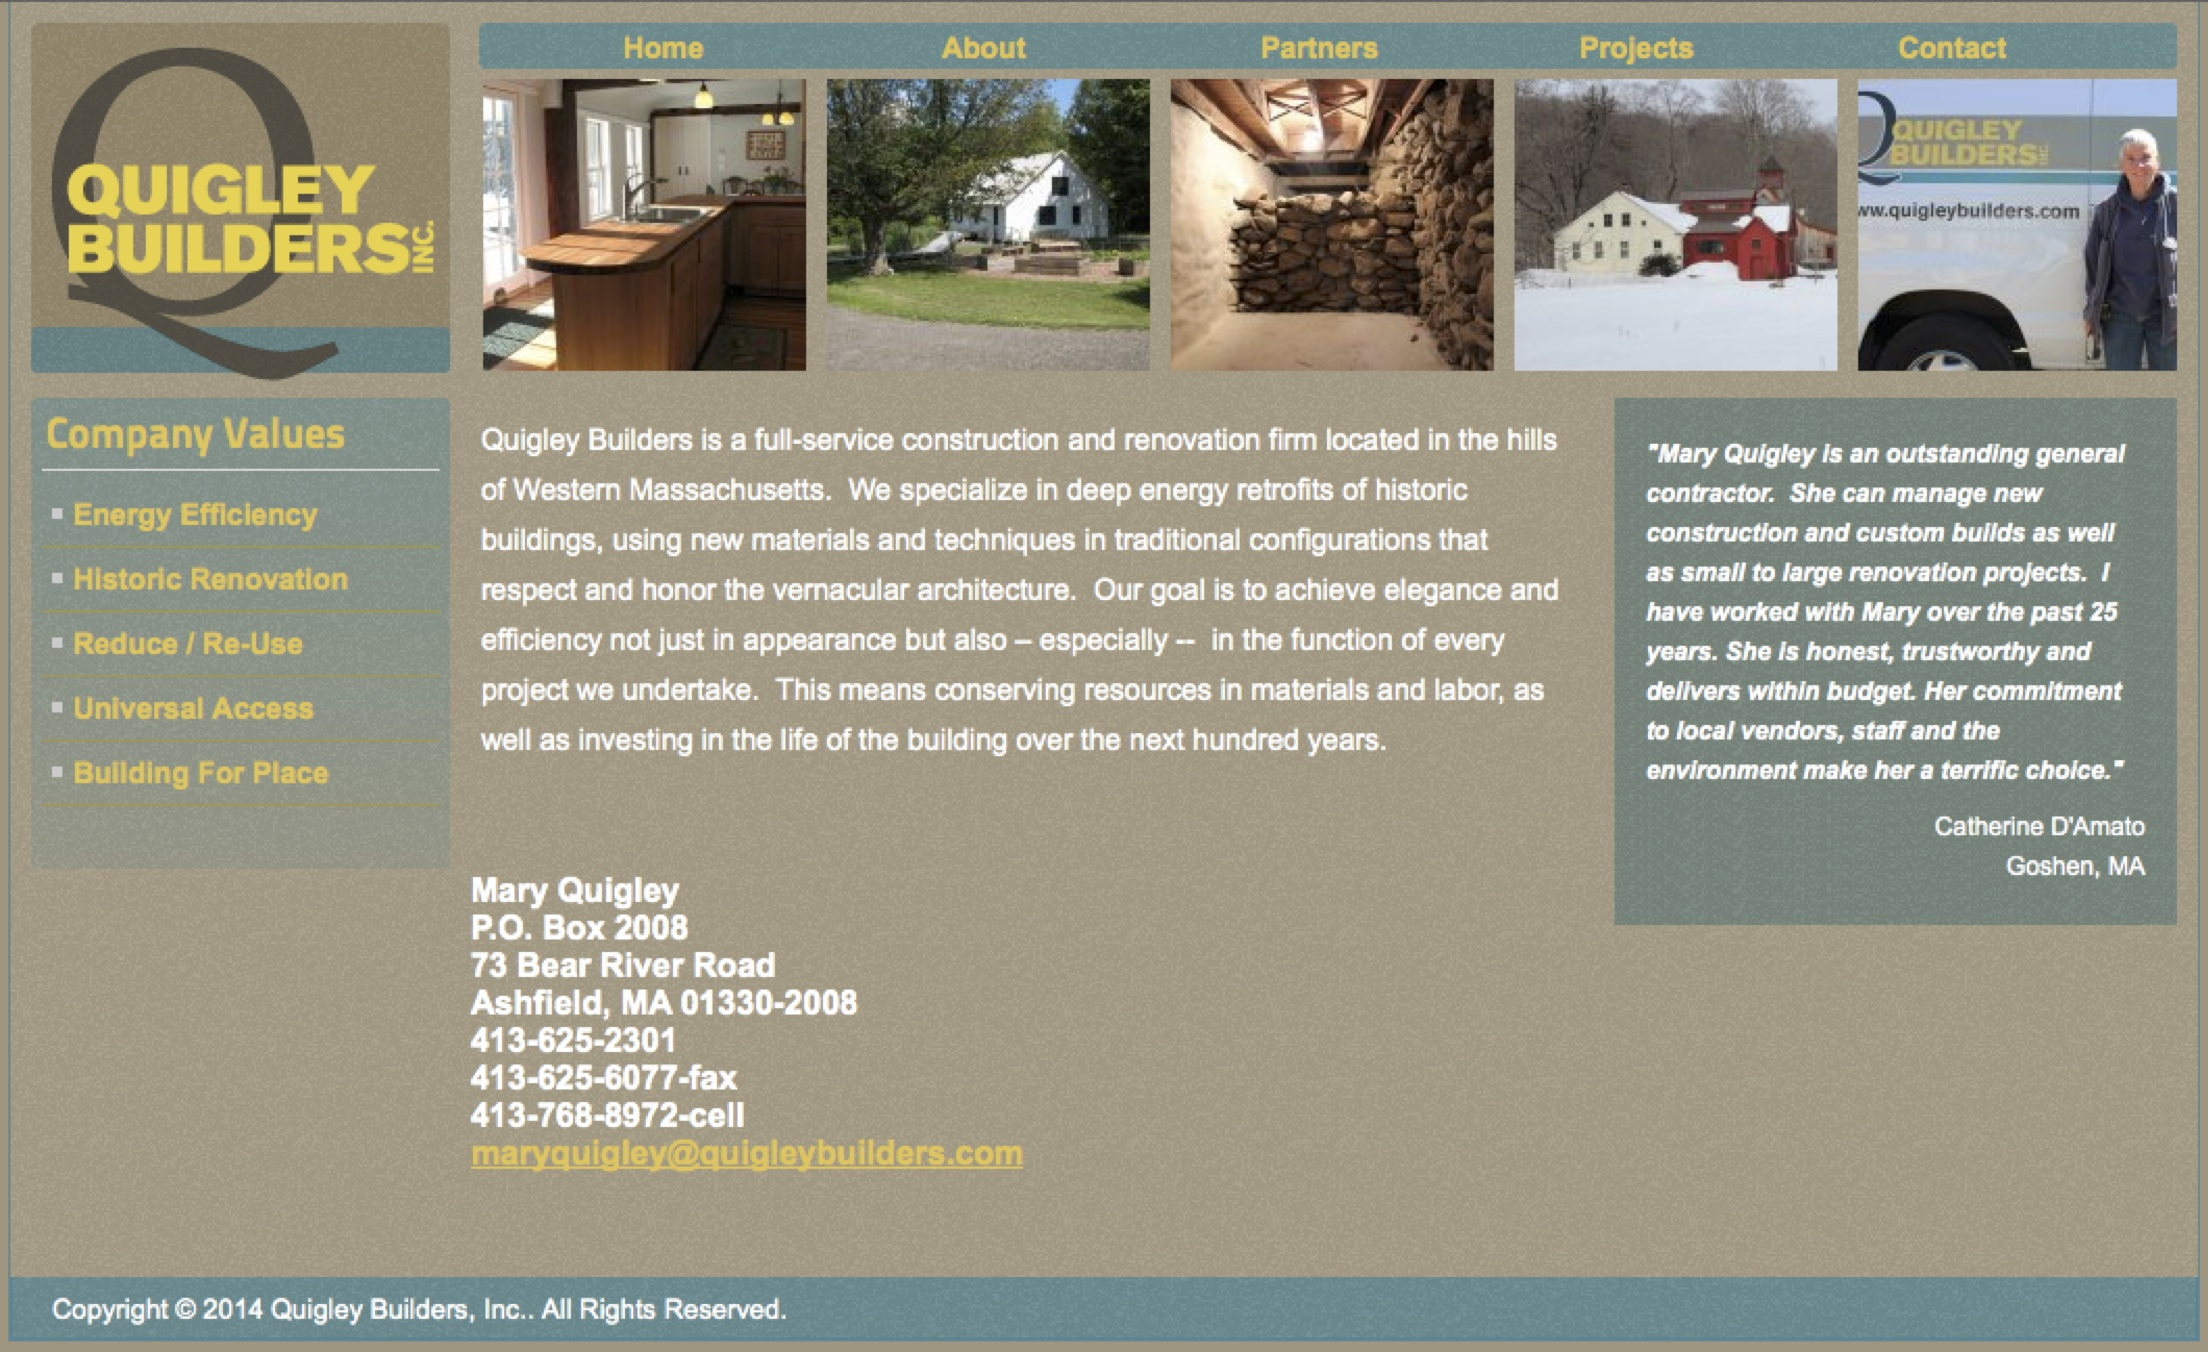 Quigleybuilders.com Home